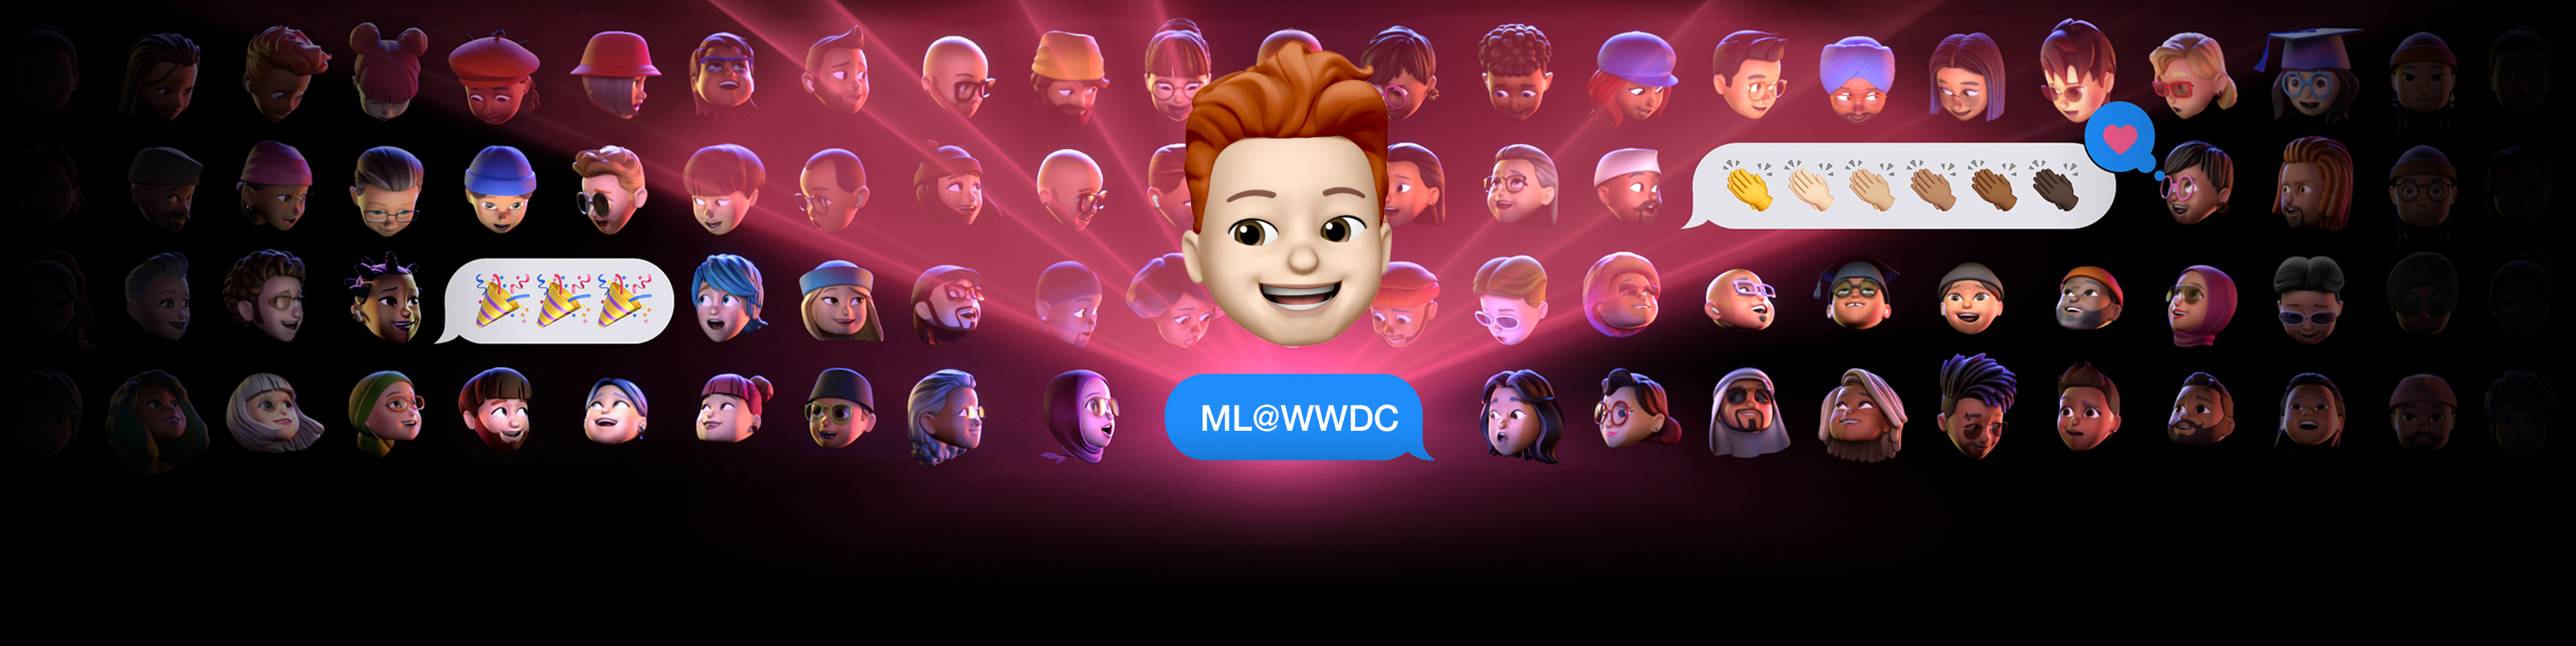 My memoji sits on the WWDC 2021 banner with an iMessage bubble reading ML@WWDC